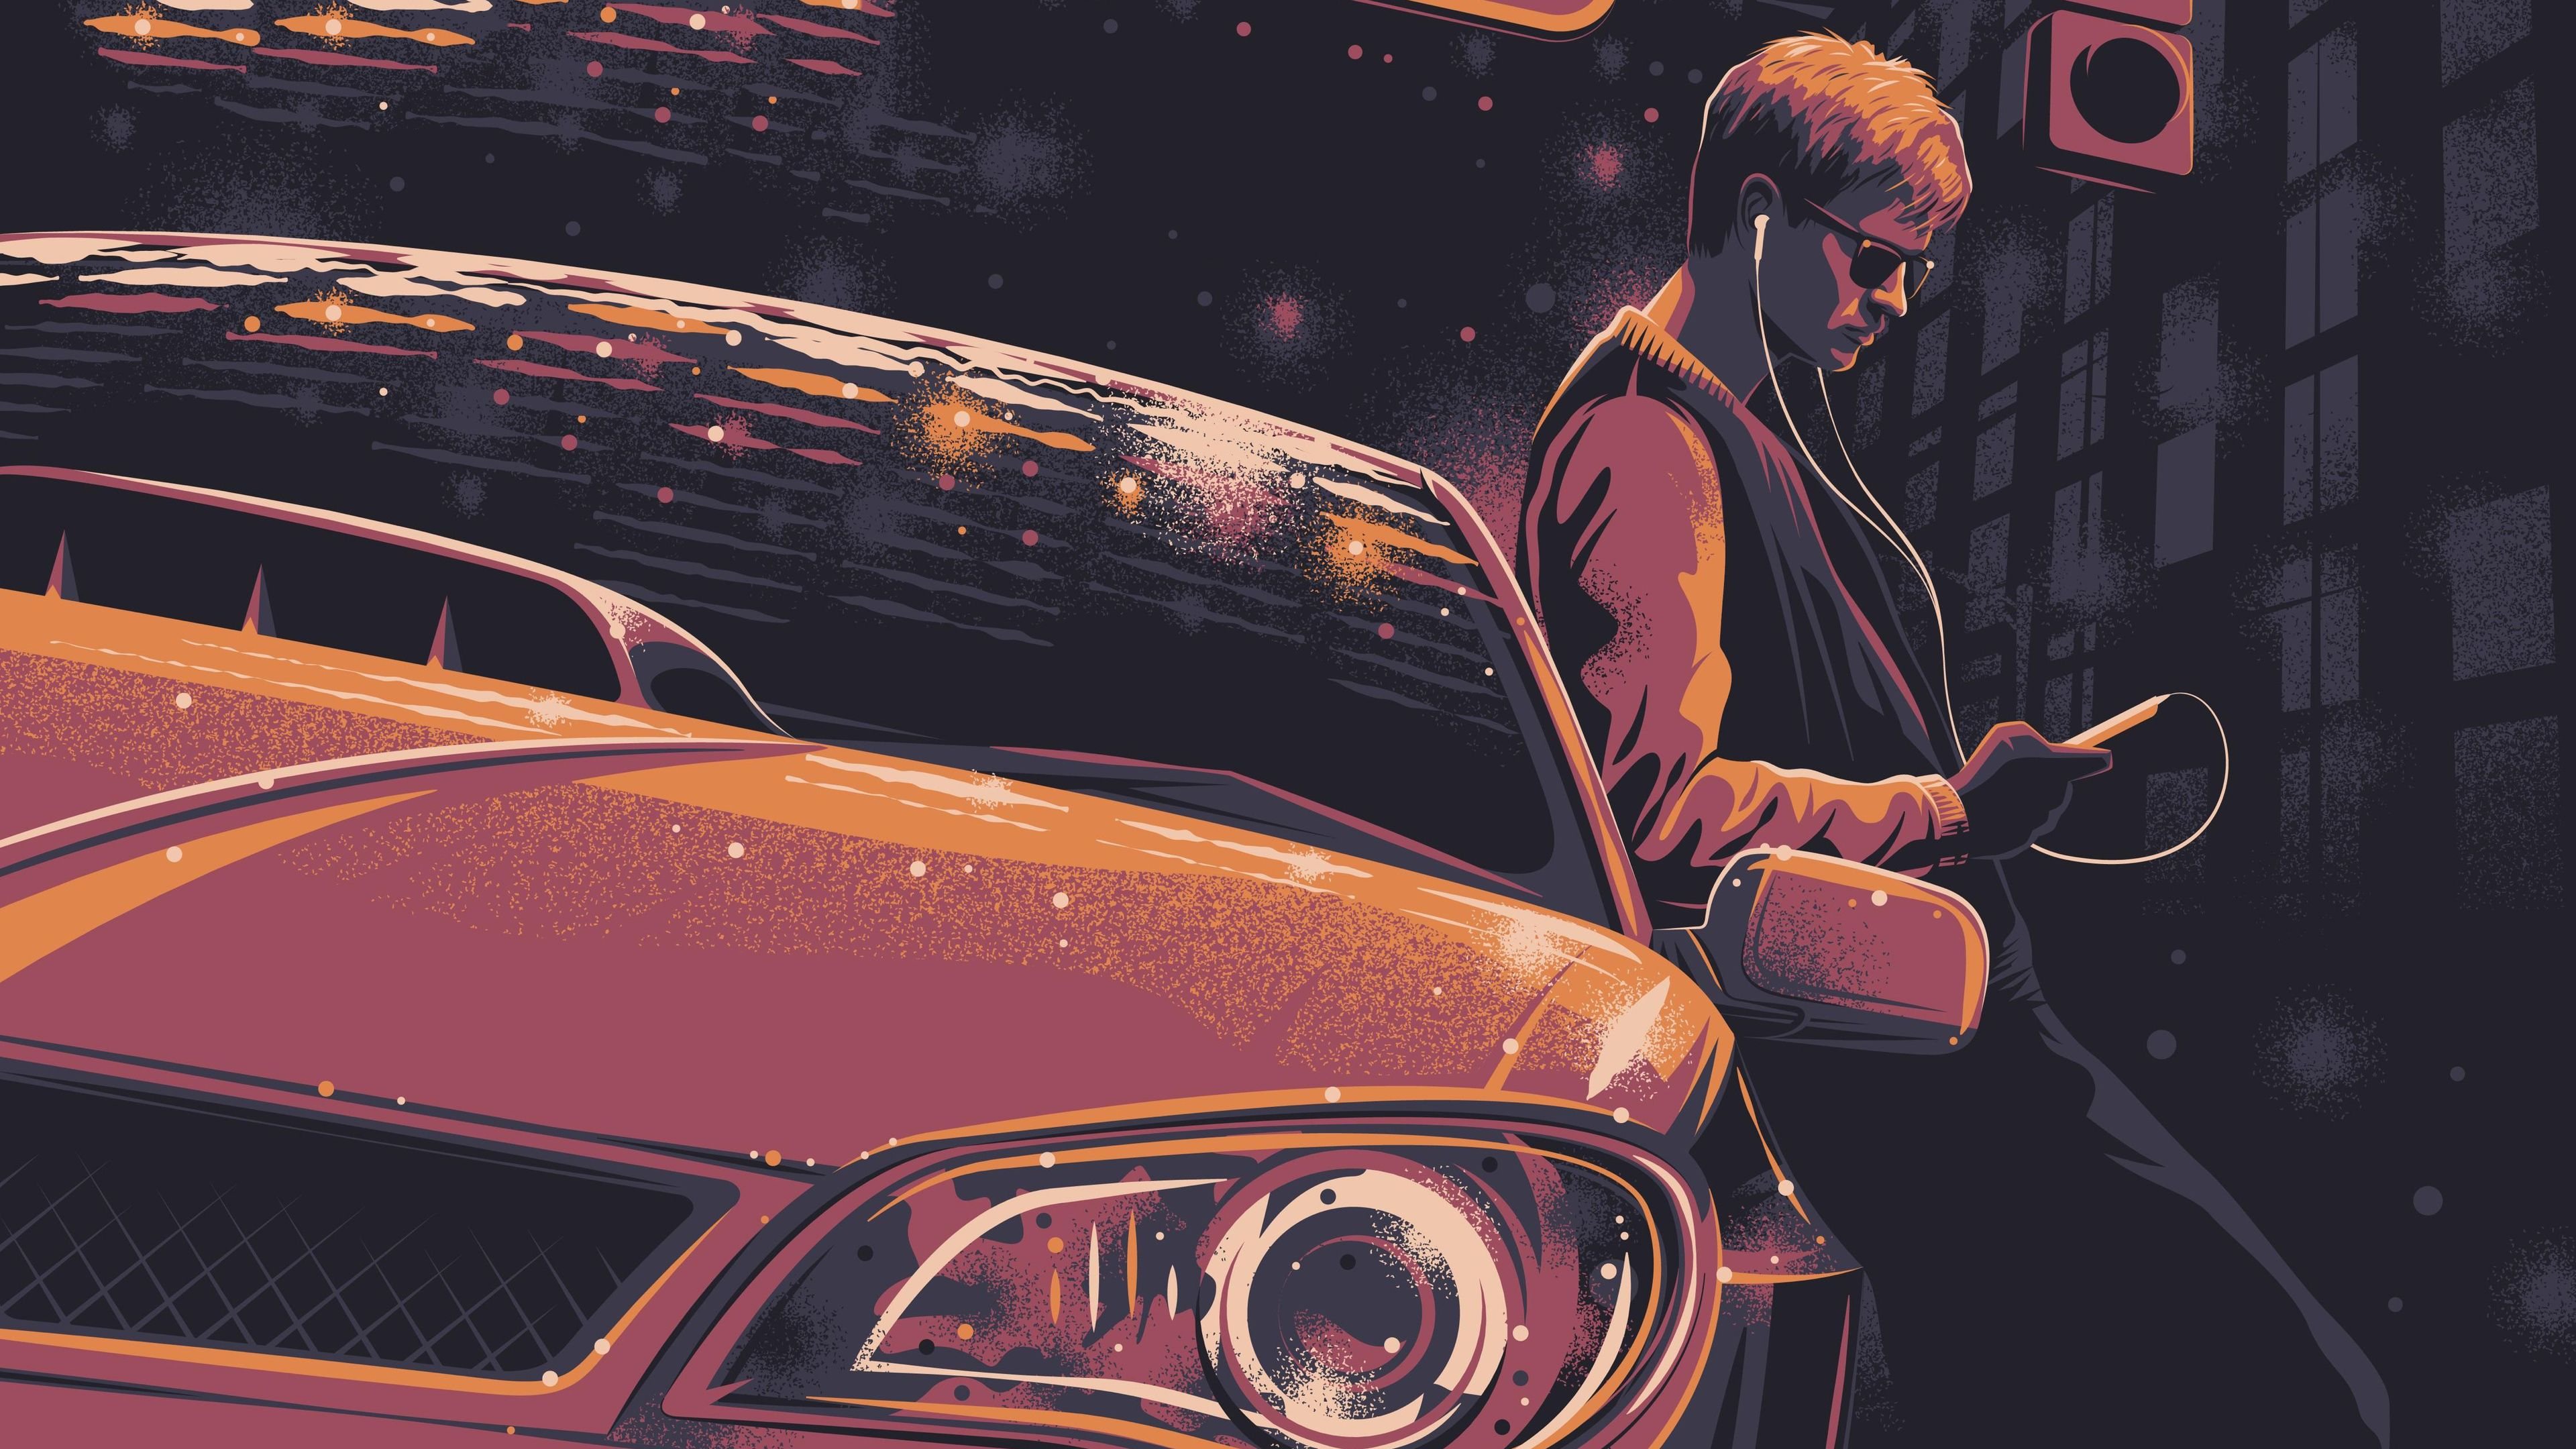 Wallpaper 4k Baby Driver 4k Art 2017 movies wallpapers 4k 3840x2160